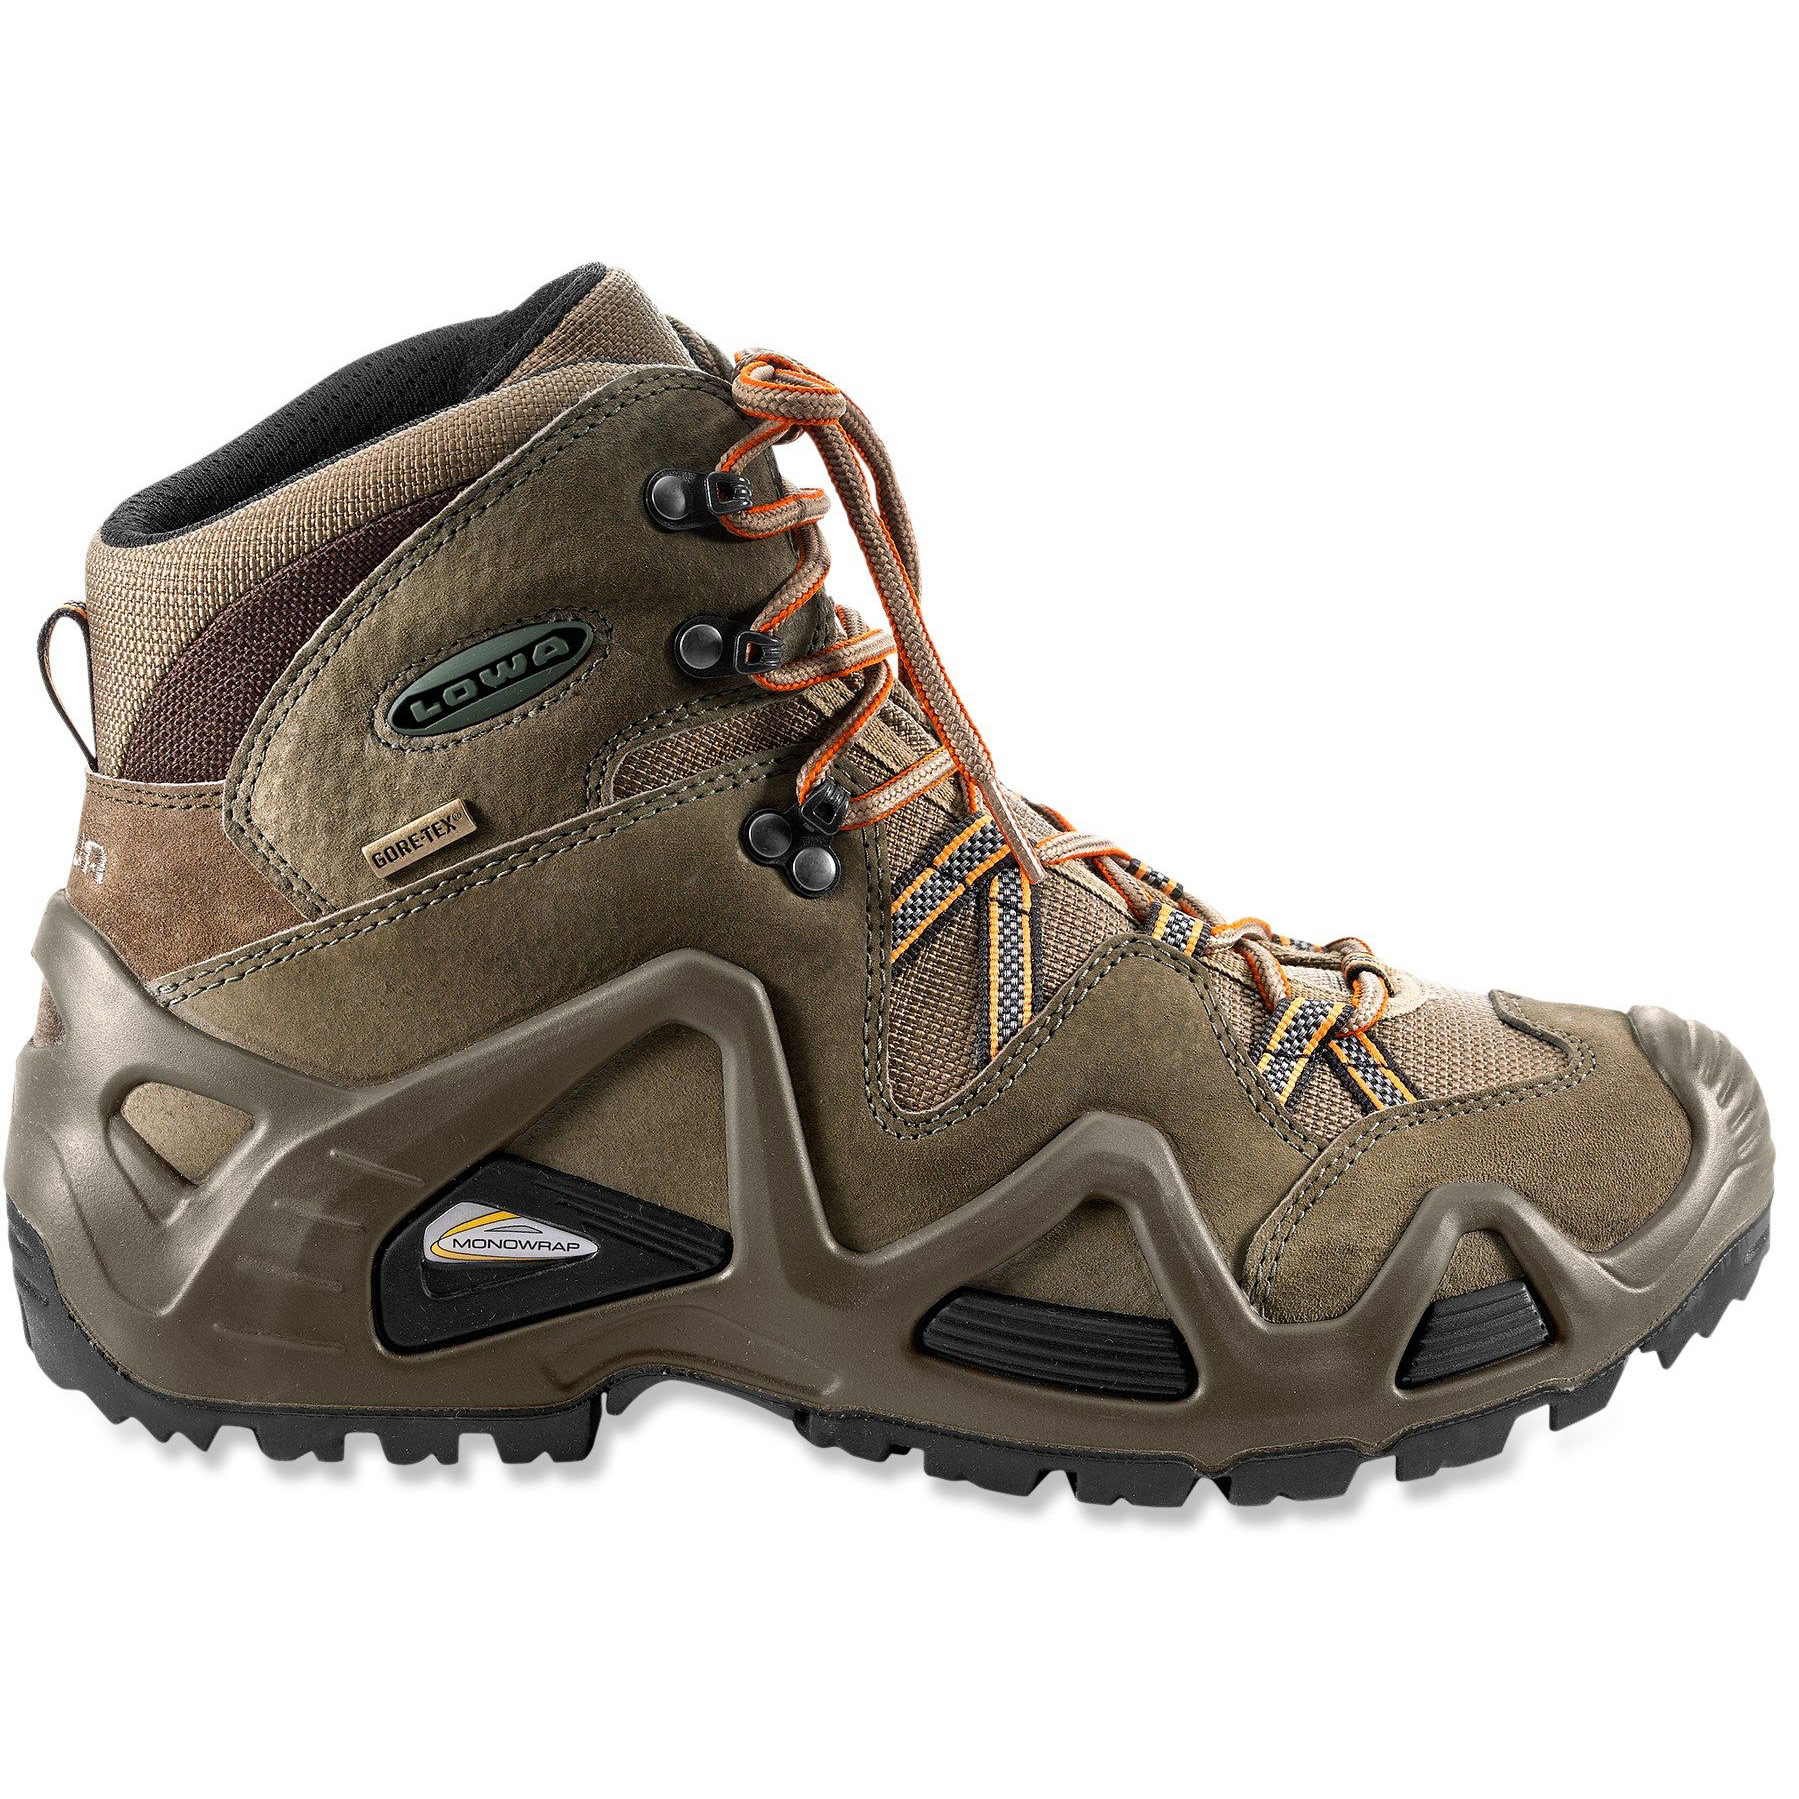 Best Tactical Hiking Boots 2020